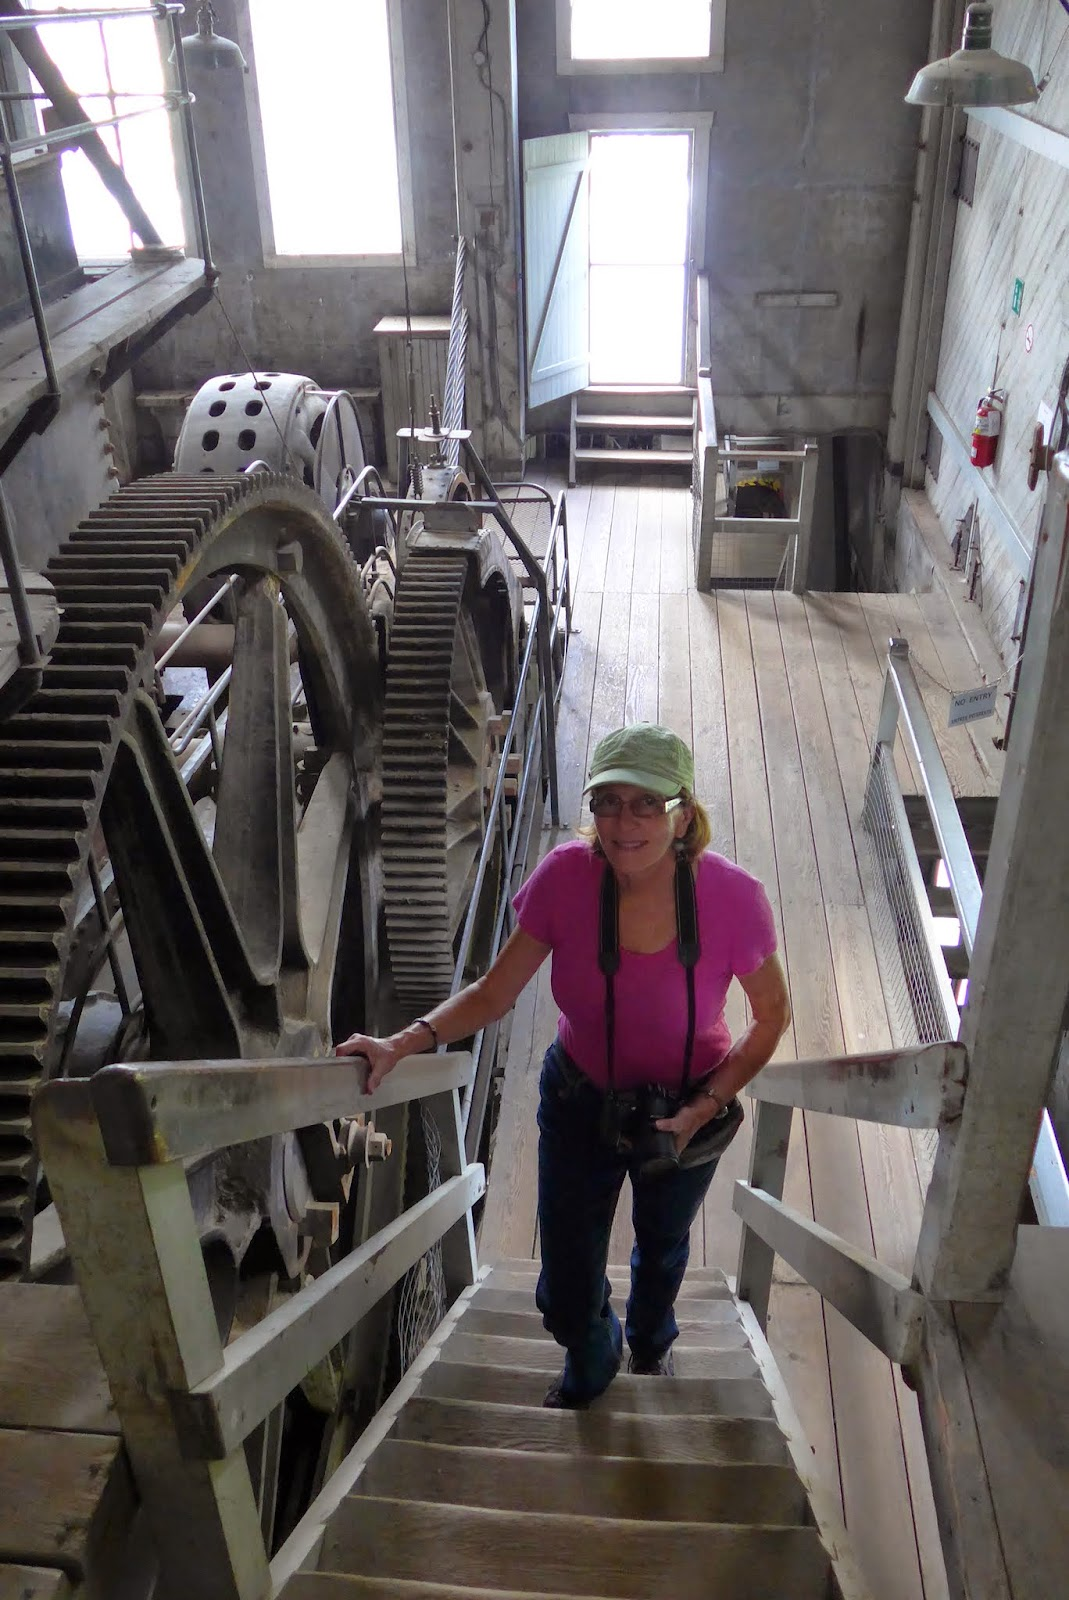 Liz walking up the stairs inside the dredge.